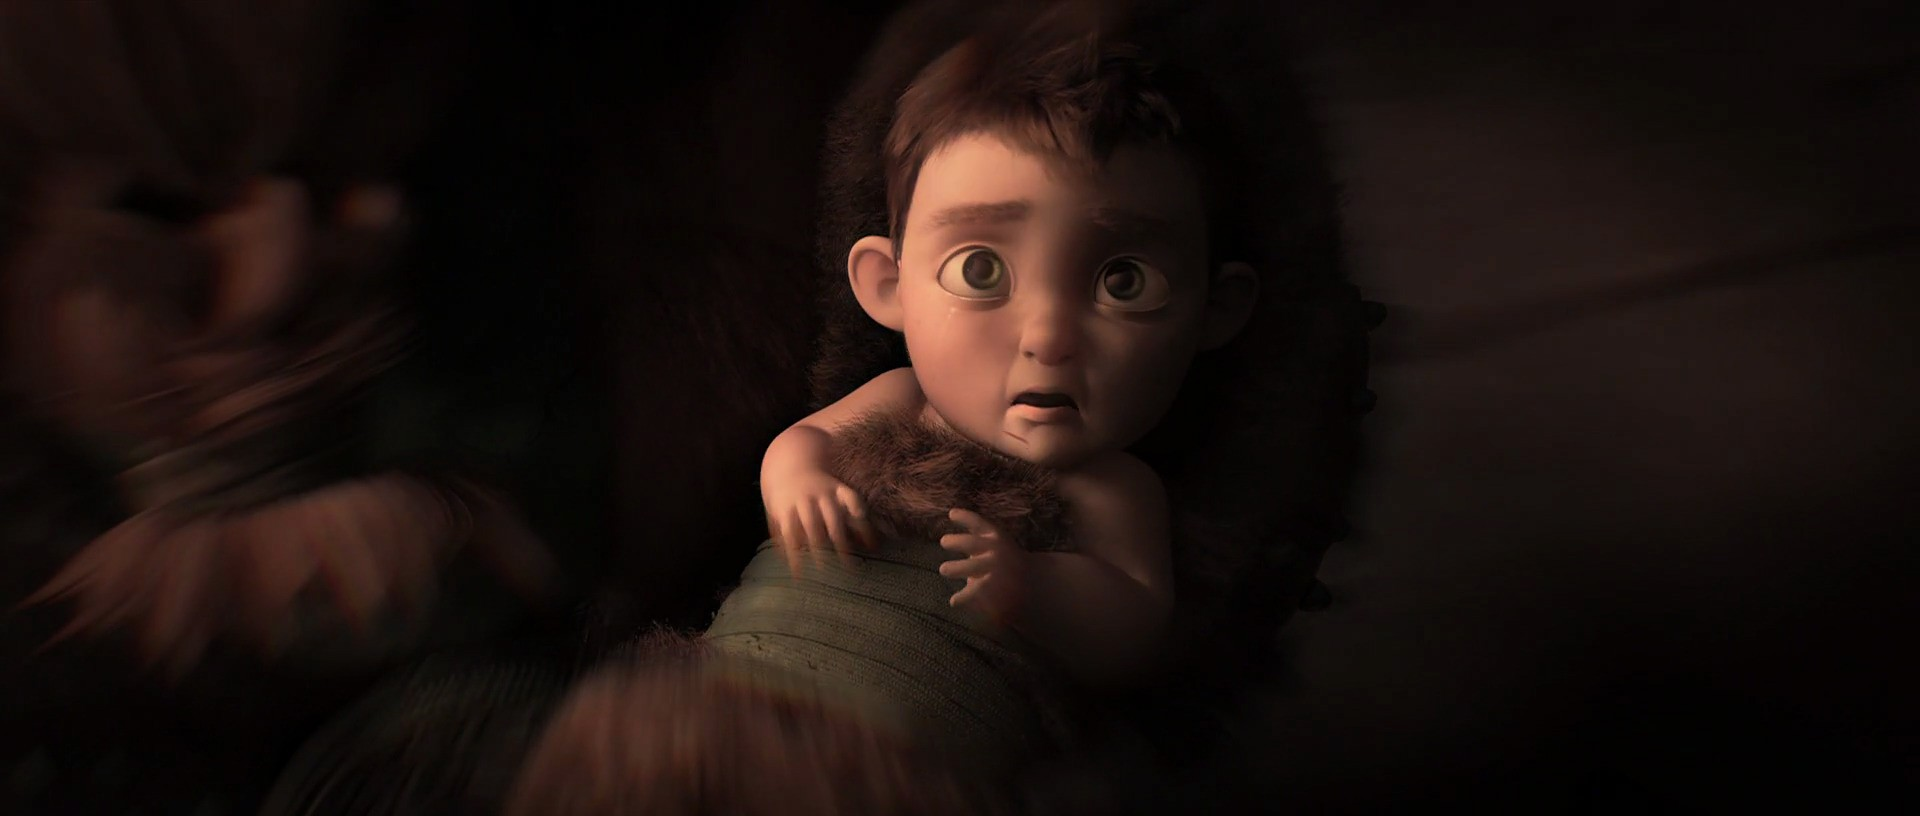 Hiccup horrendous haddock iii franchise how to train your dragon hiccup as a baby ccuart Choice Image